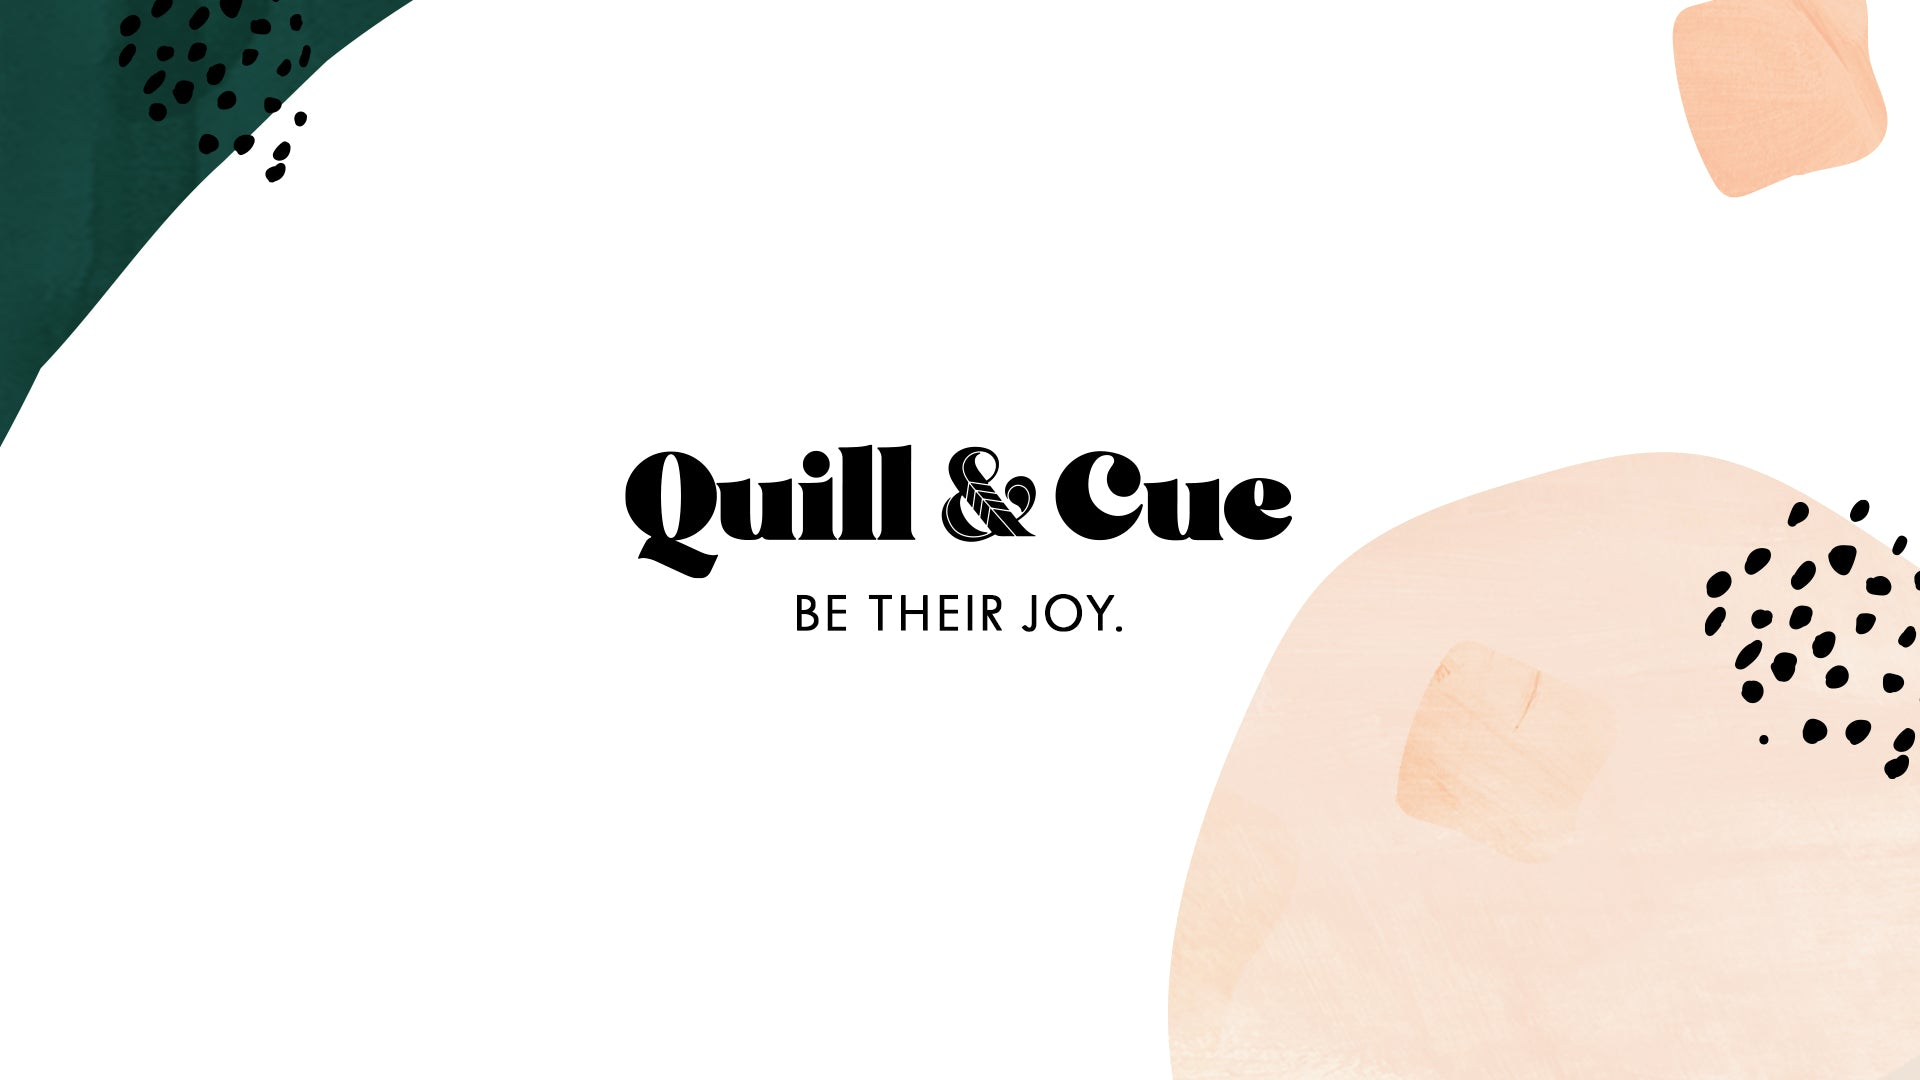 Image with the text Quill & Cue BE THEIR JOY.